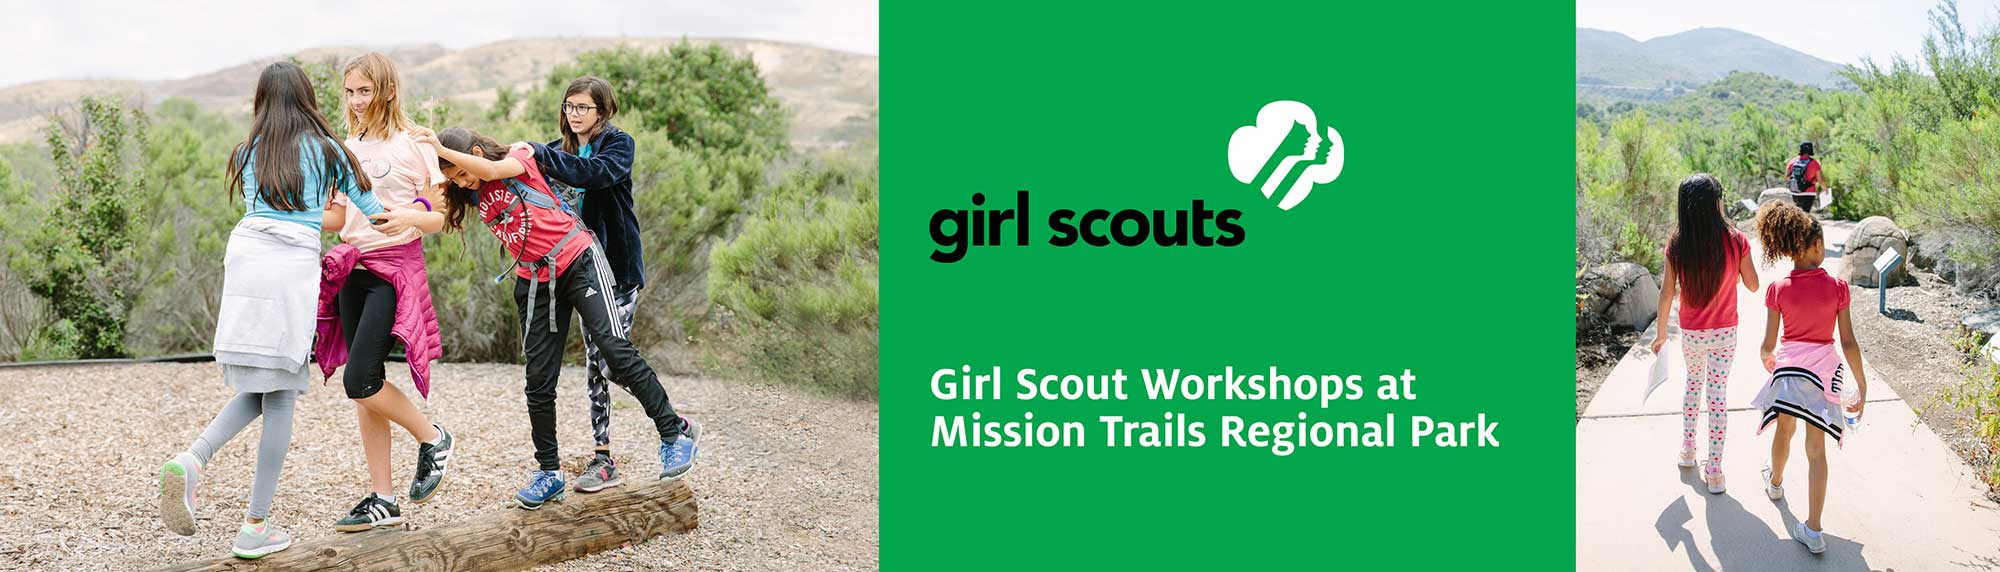 Girl Scout Workshops at Mission Trails Regional Park